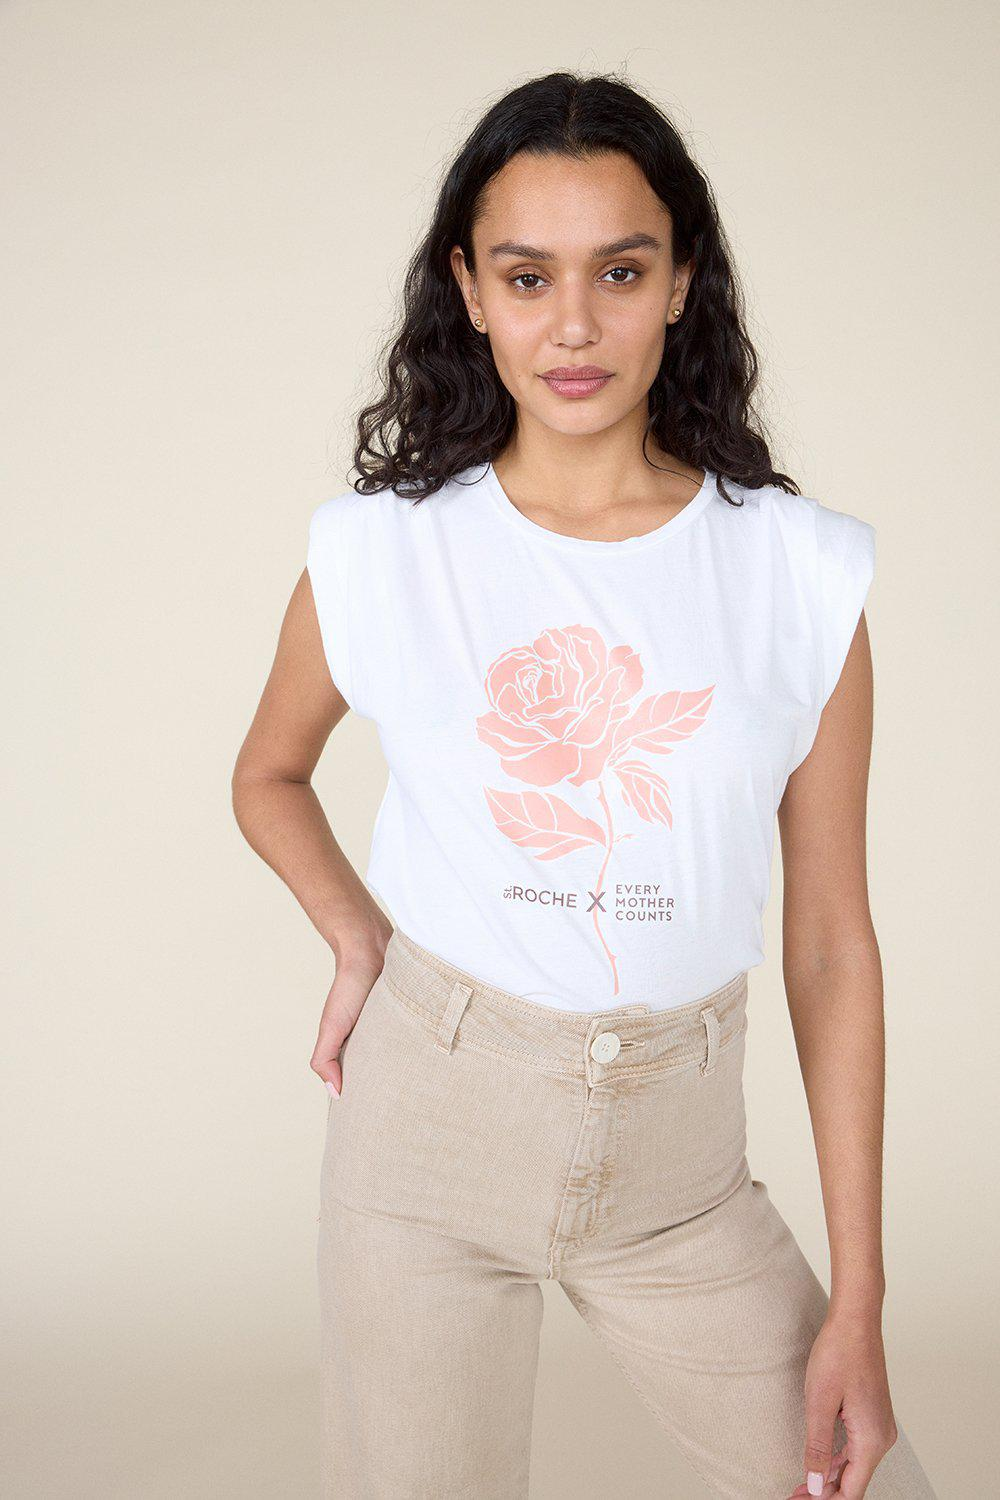 ST.ROCHE  X EVERY MOTHER COUNTS, ROSE PADDED SHOULDER TEE - WHITE